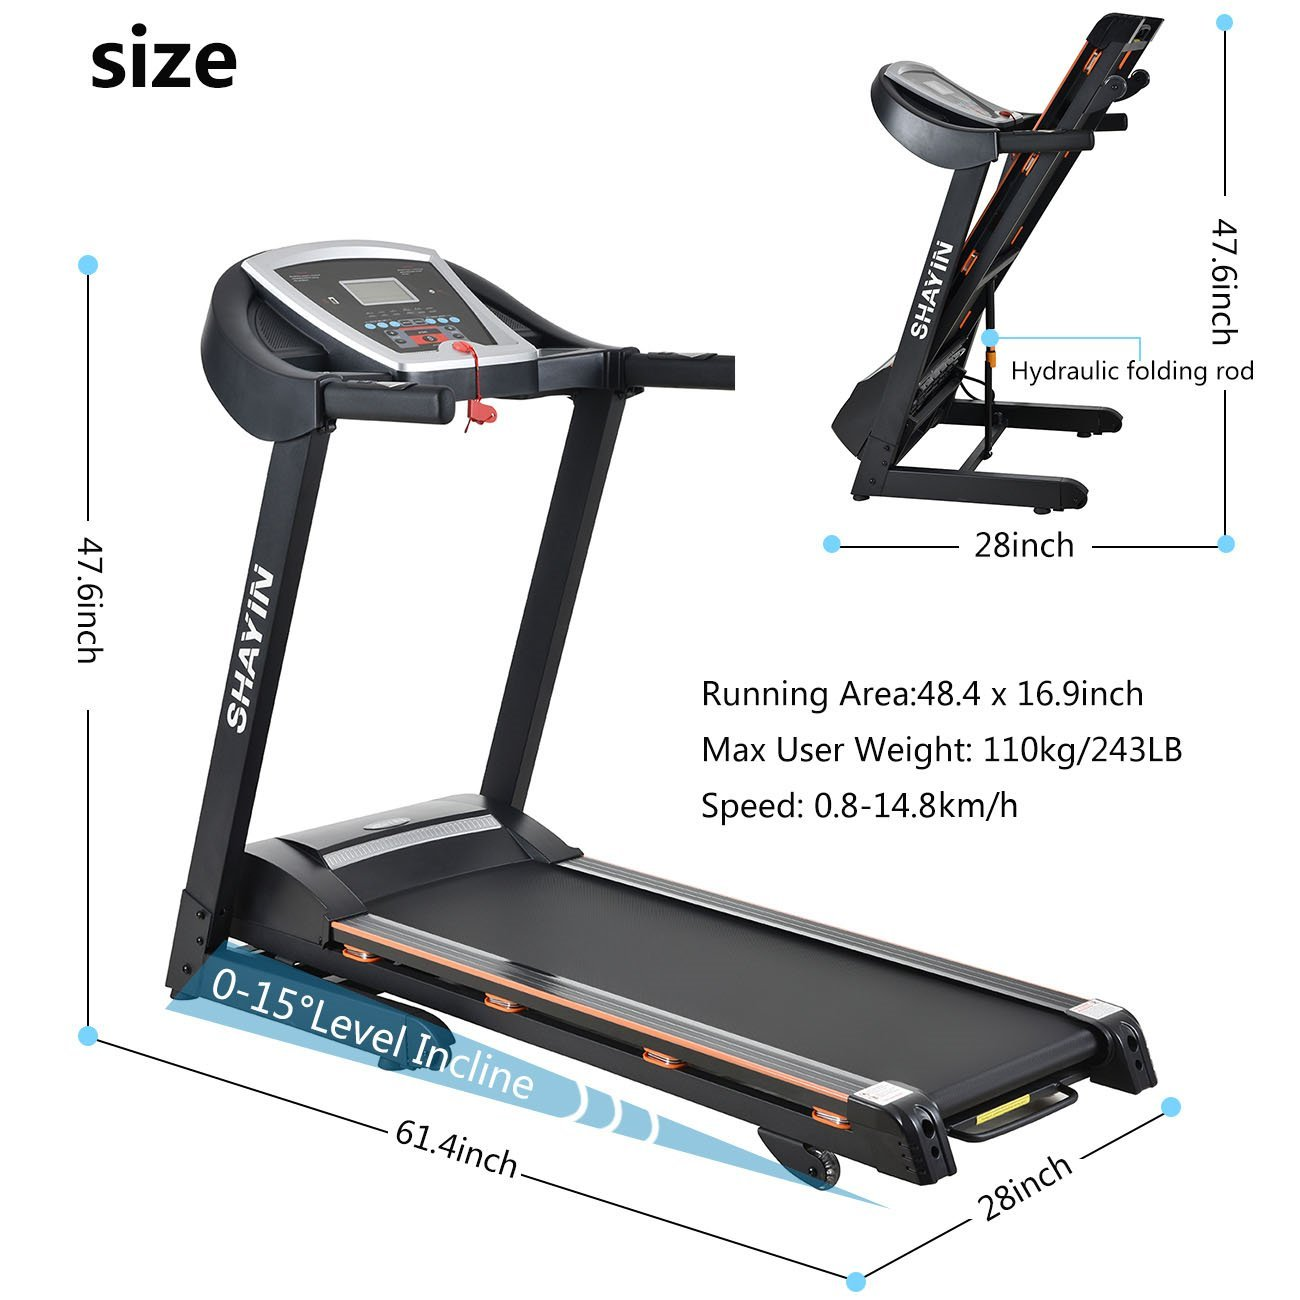 Treadmill Portable Folding Running Machine Indoor Commercial Home Health Fitness Training Equipment (US STOCK) by Shayin (Image #1)